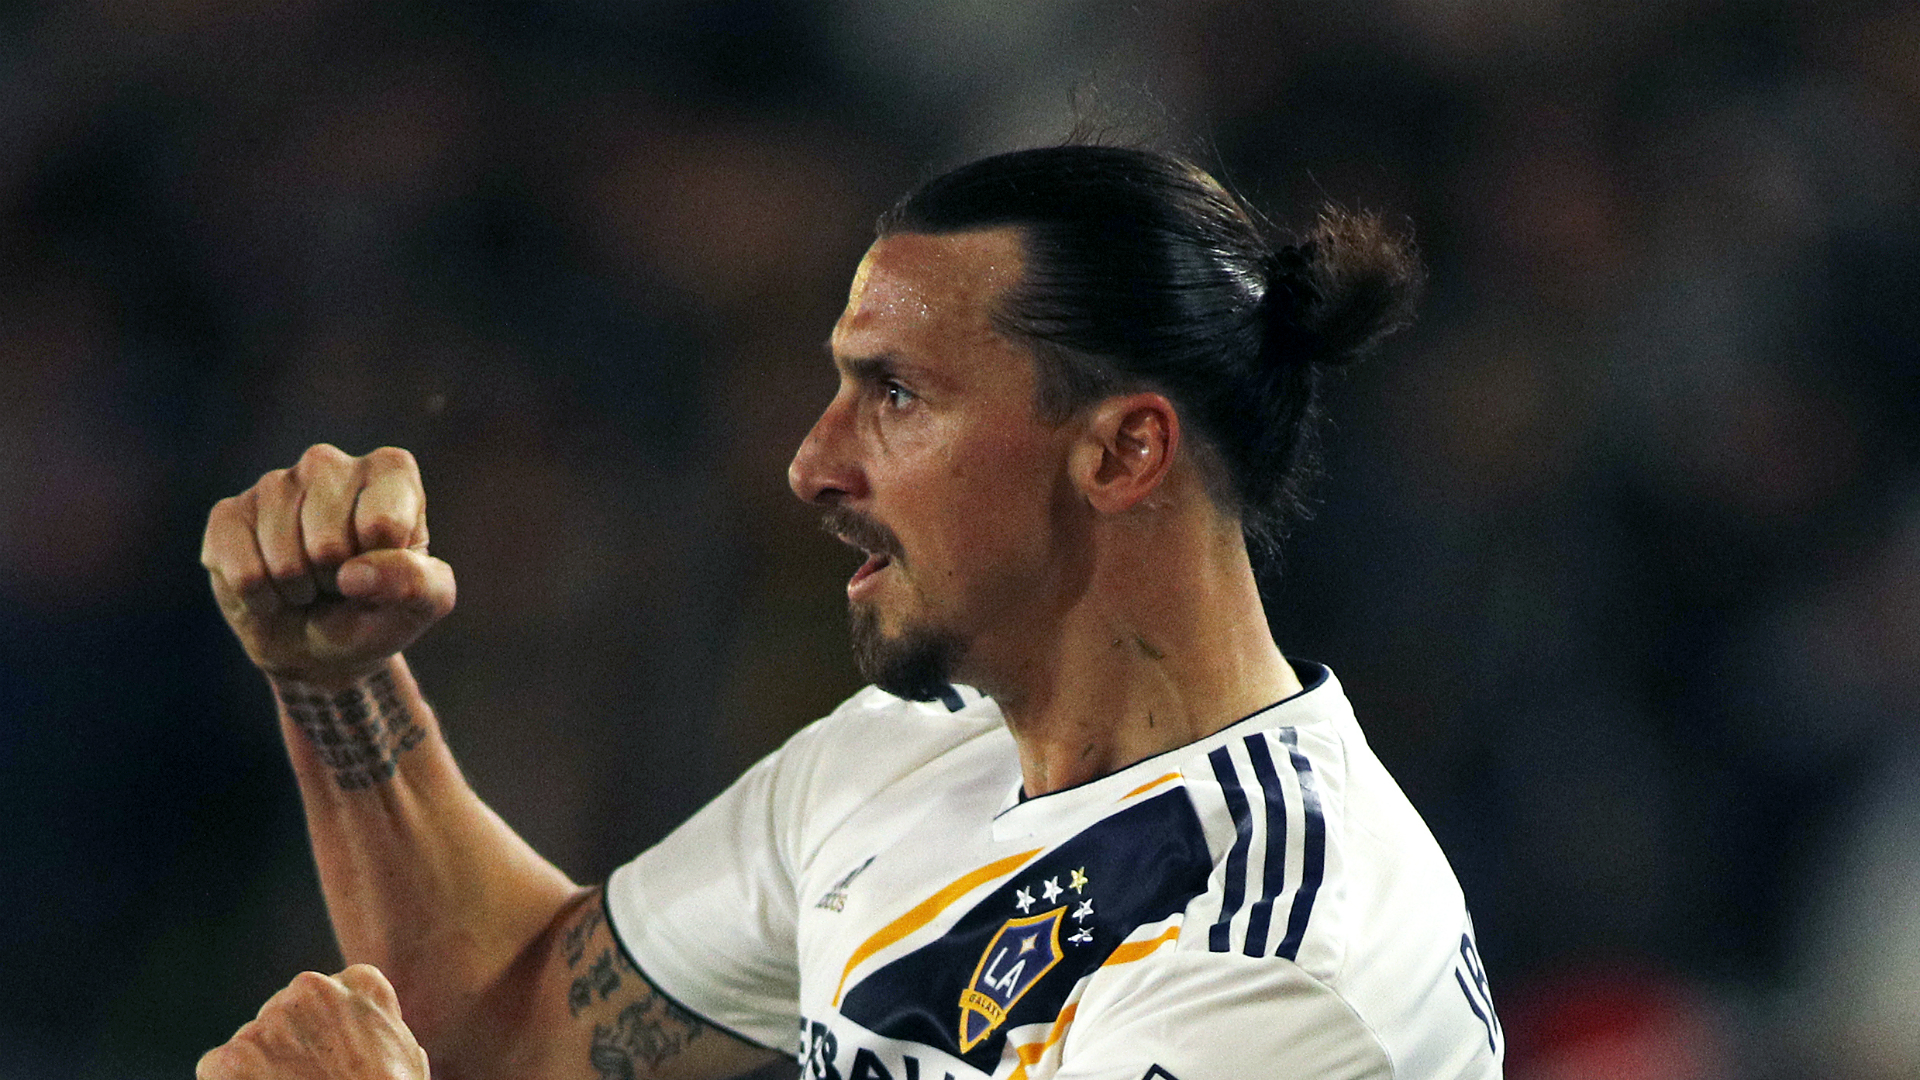 Zlatan Ibrahimovic has been tipped to rejoin AC Milan, but head coach Stefano Pioli gave little away when probed on the speculation.